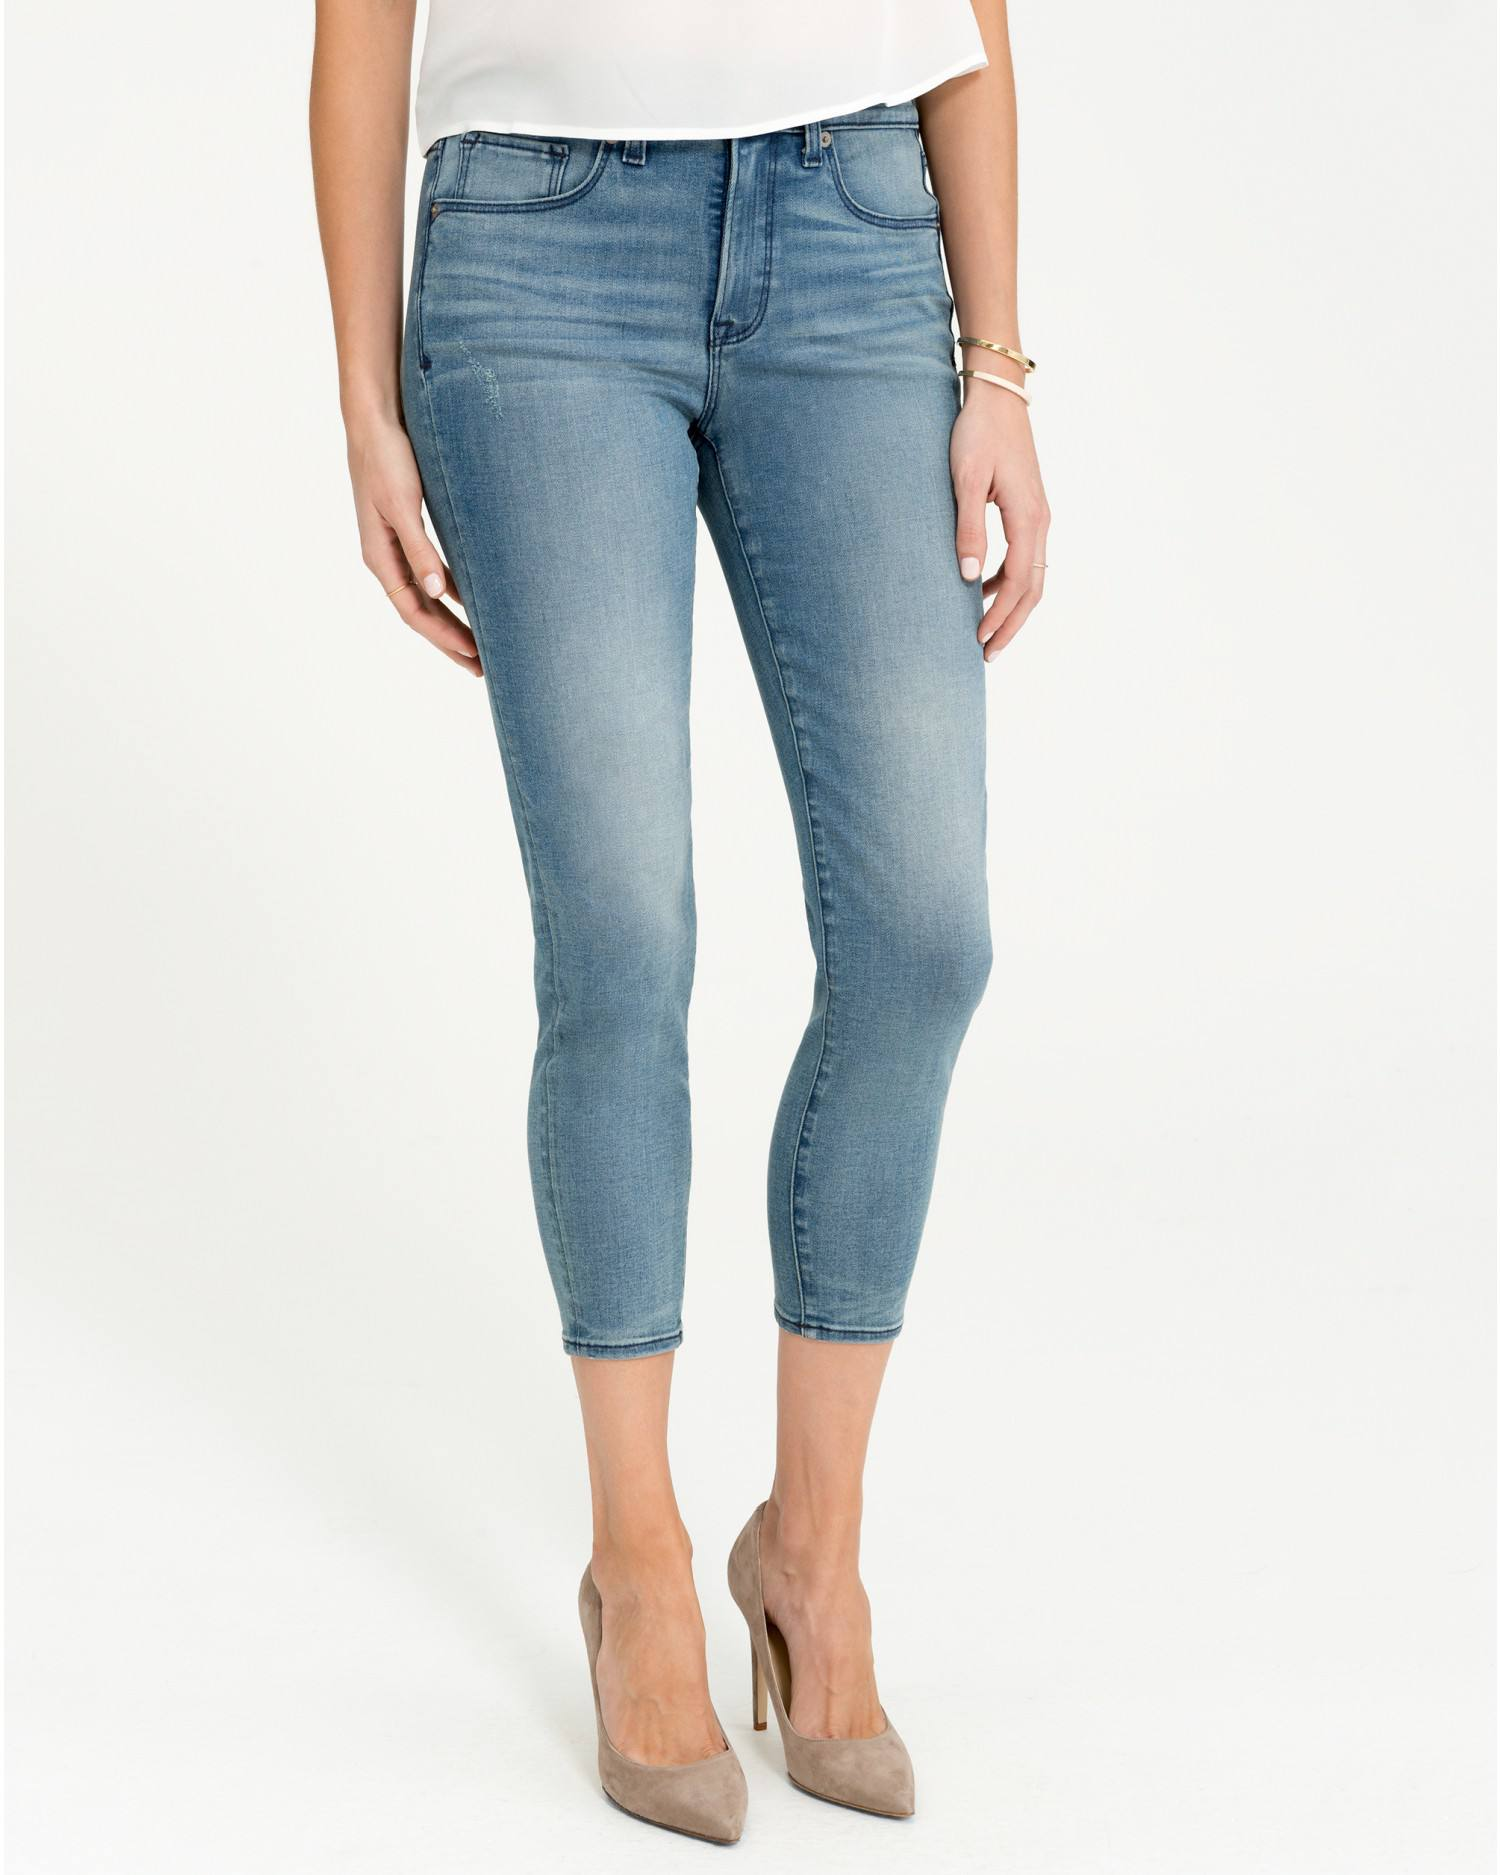 567fa980bfd11 Best Tummy Control Jeans That Give You a Flat Stomach